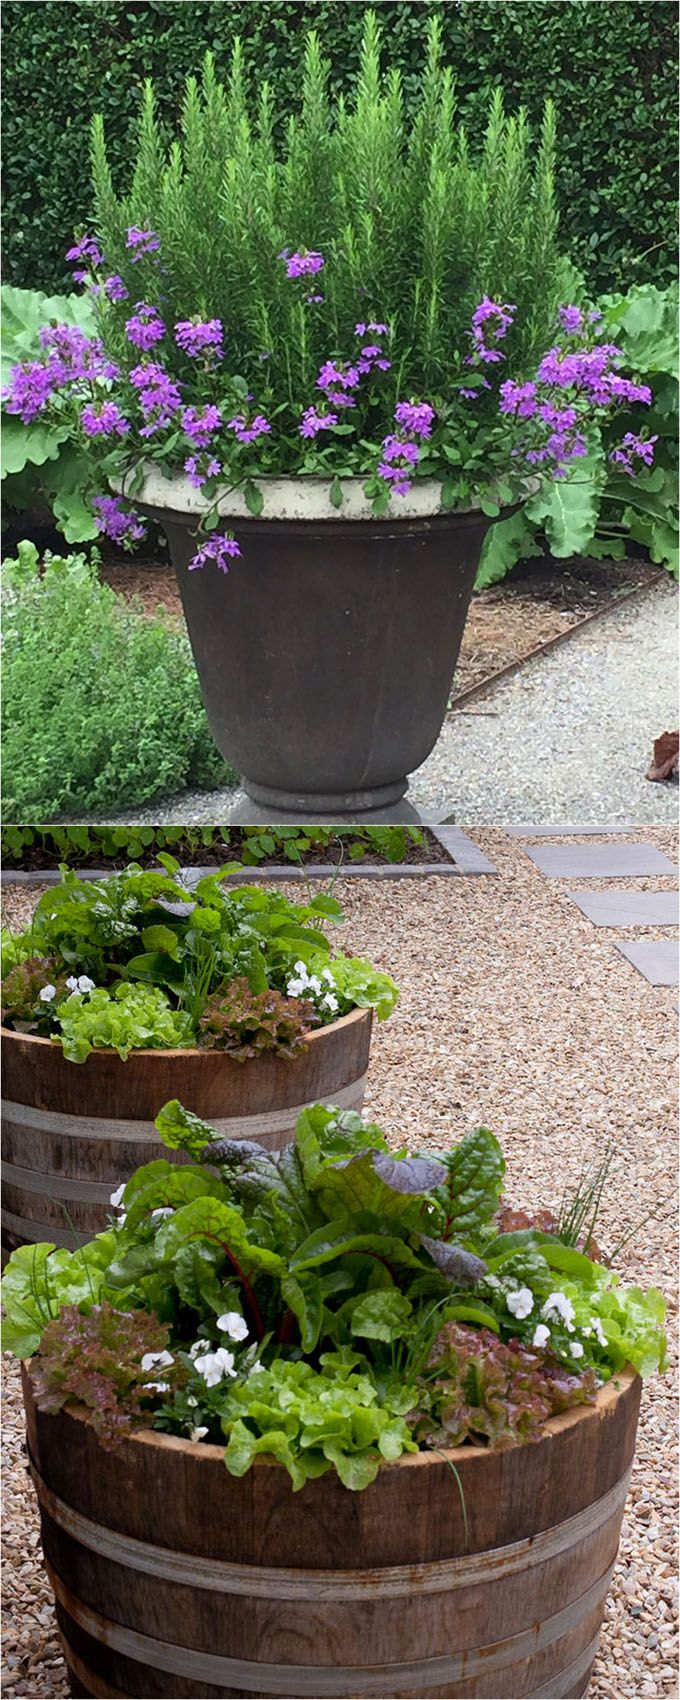 Best 25 Container garden ideas only on Pinterest Outdoor potted